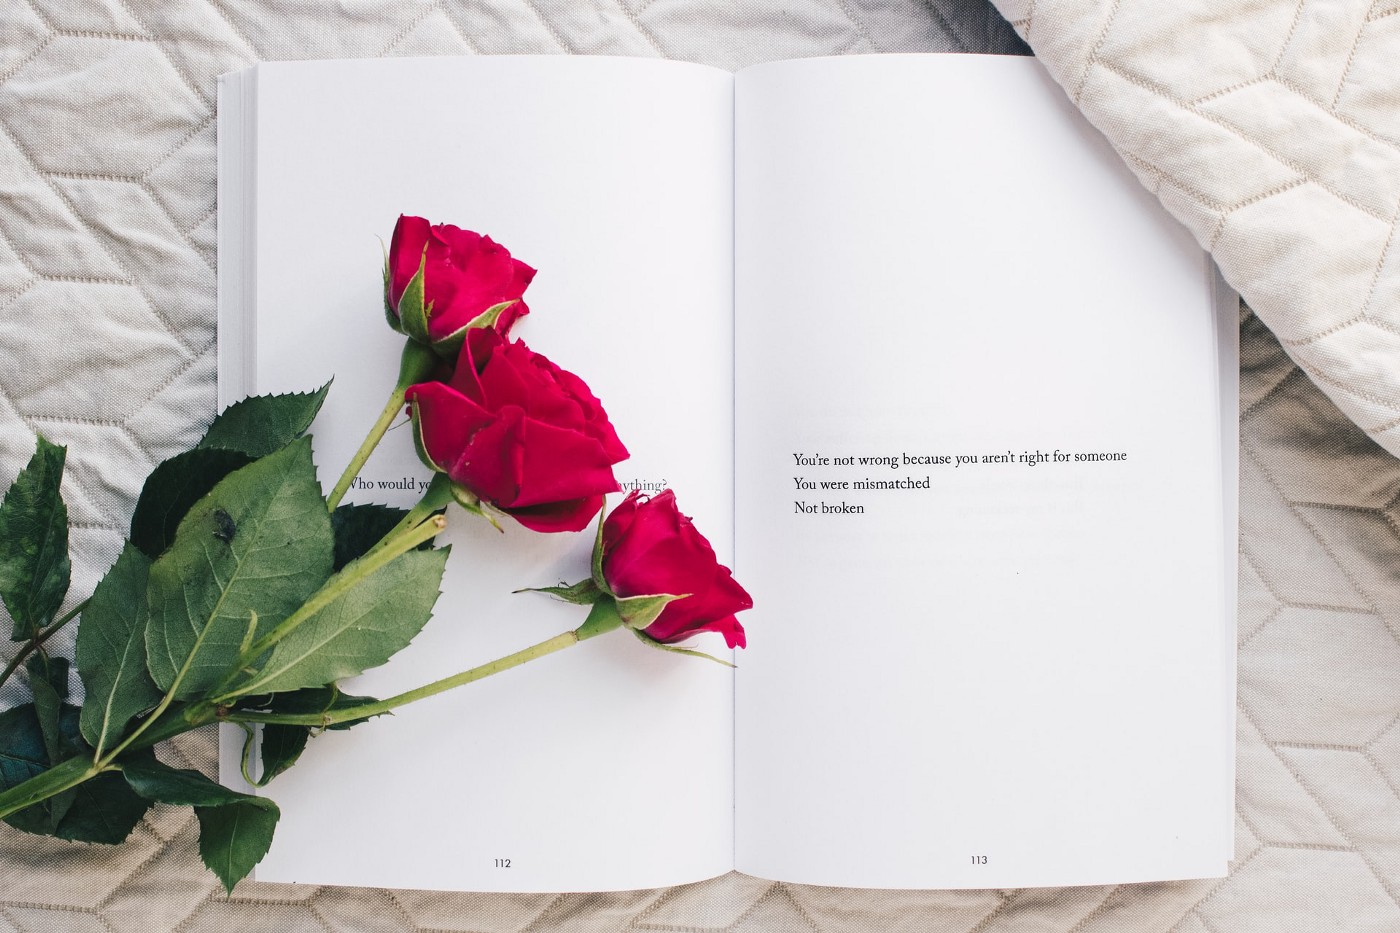 Three red roses on an open white book—love and relationships